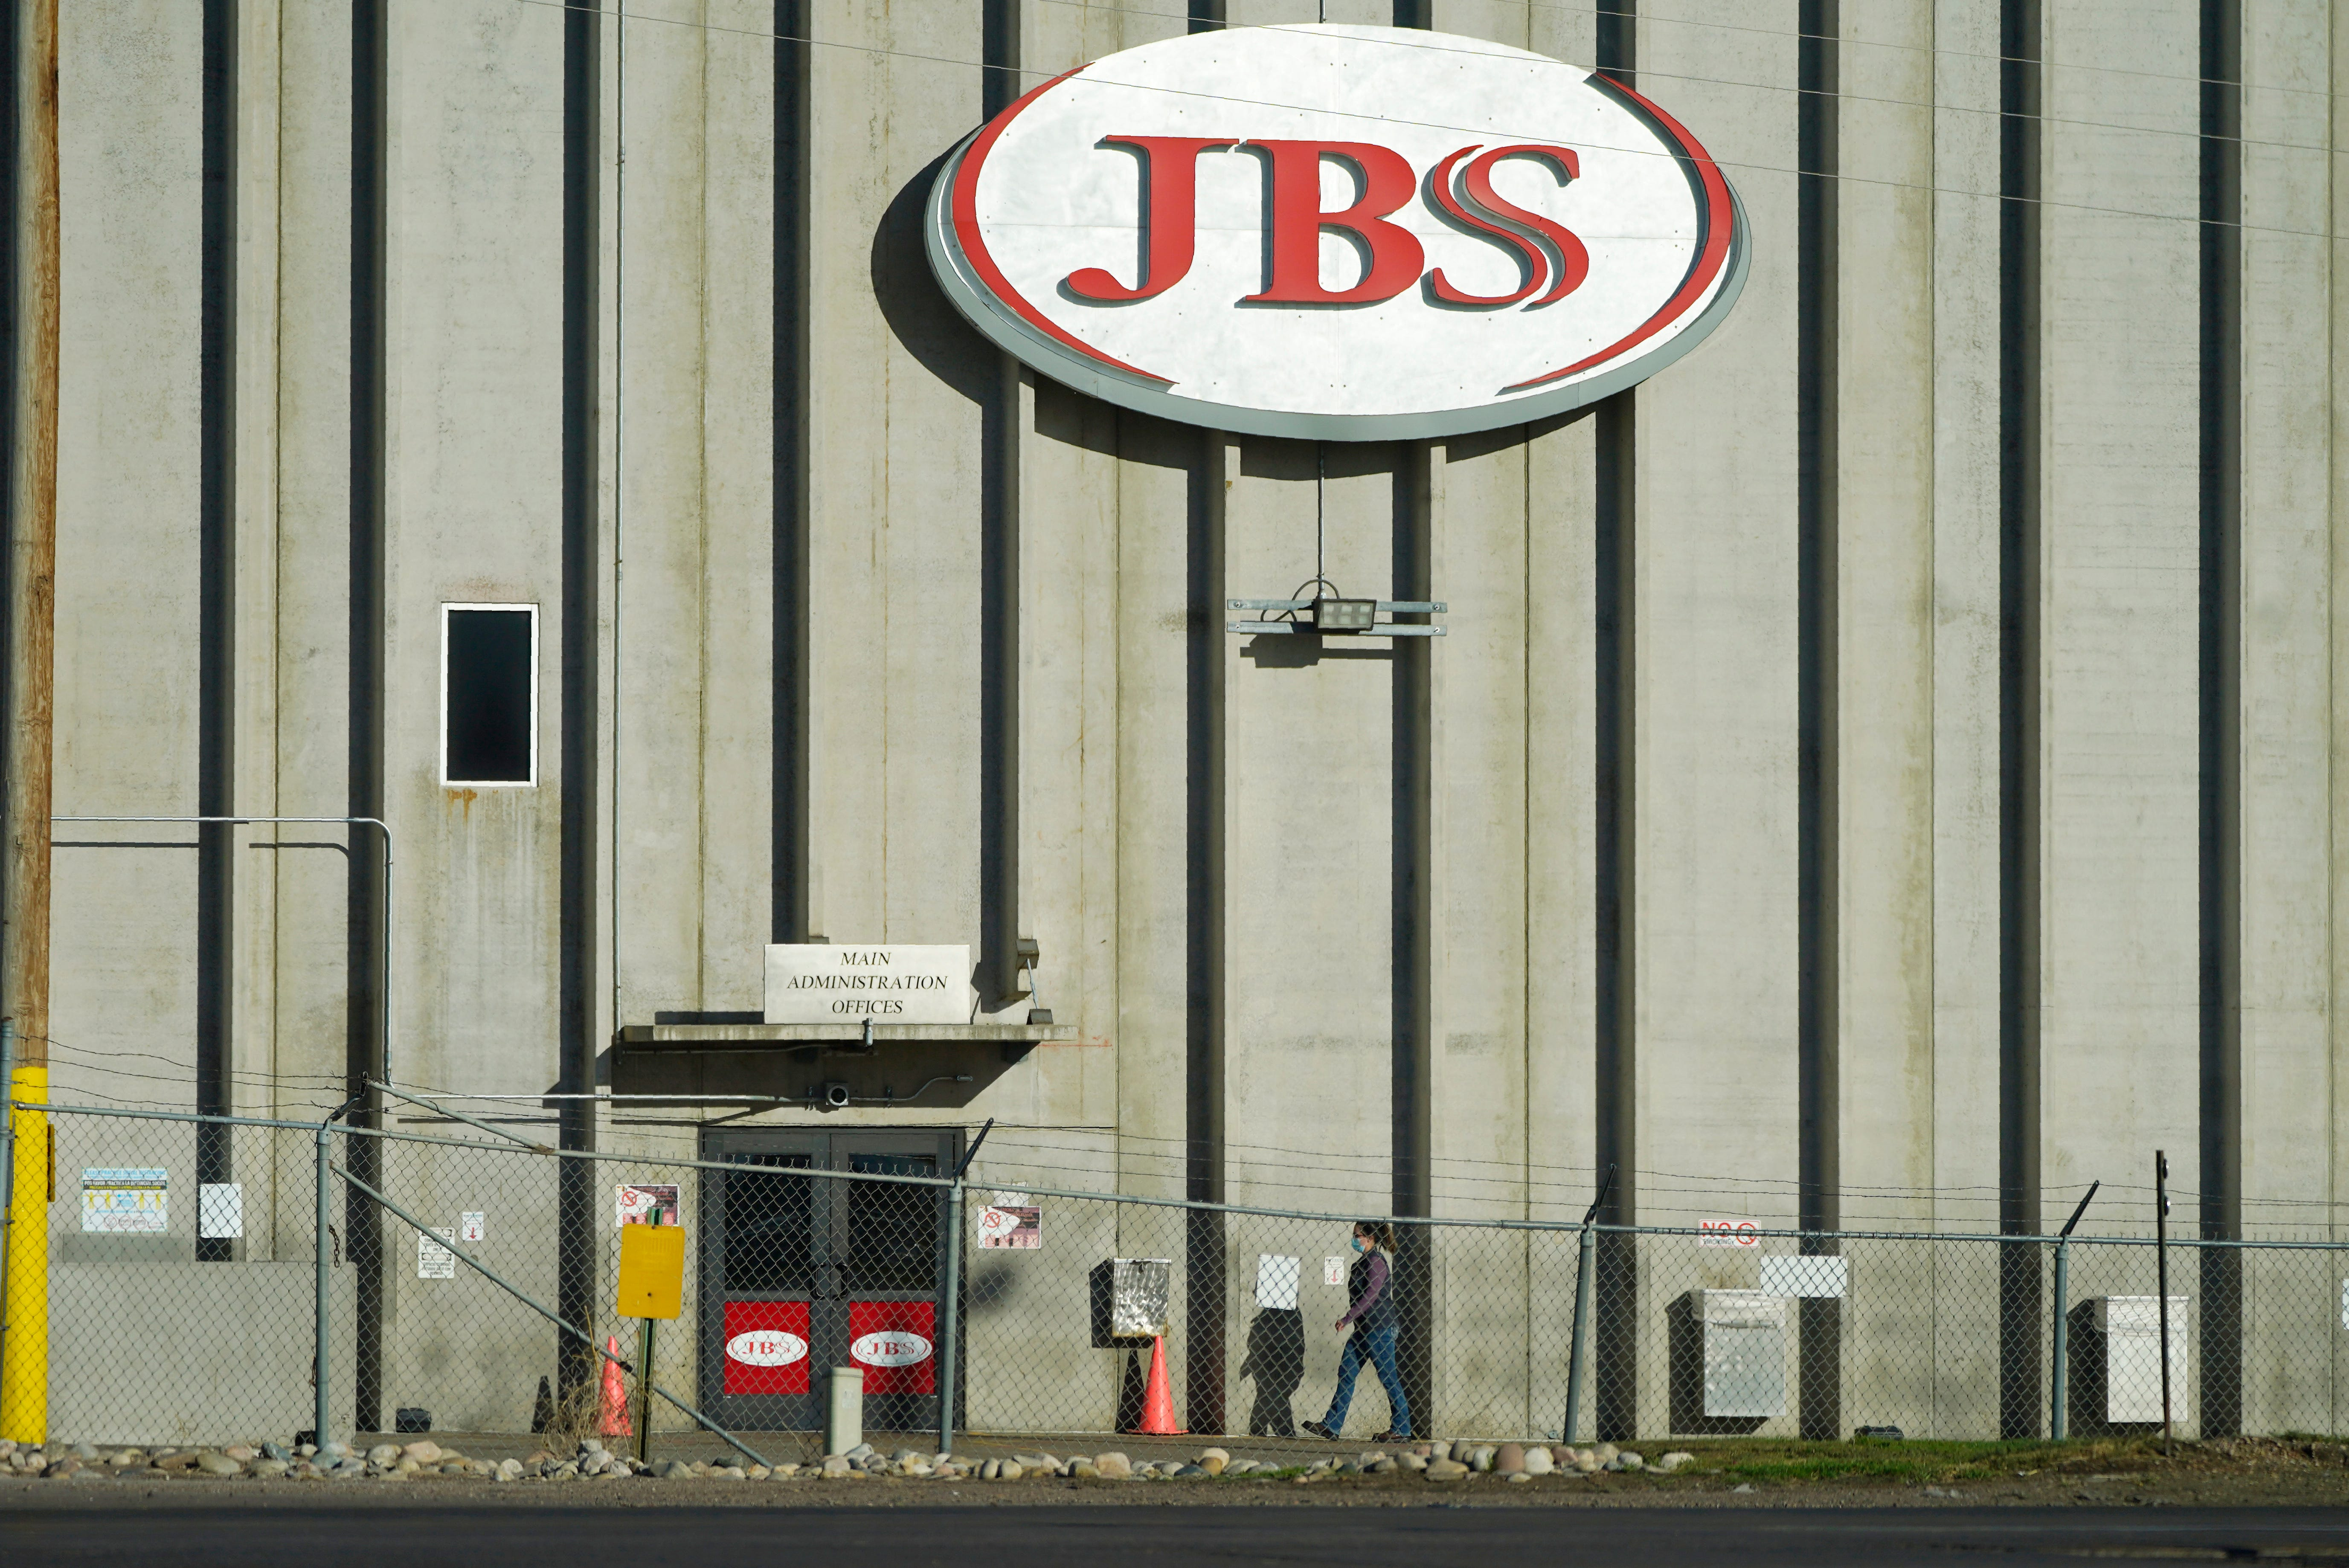 JBS USA reportedly shuts down nine beef plants after cyberattack. 'Vast majority' of plants to be open Wednesday